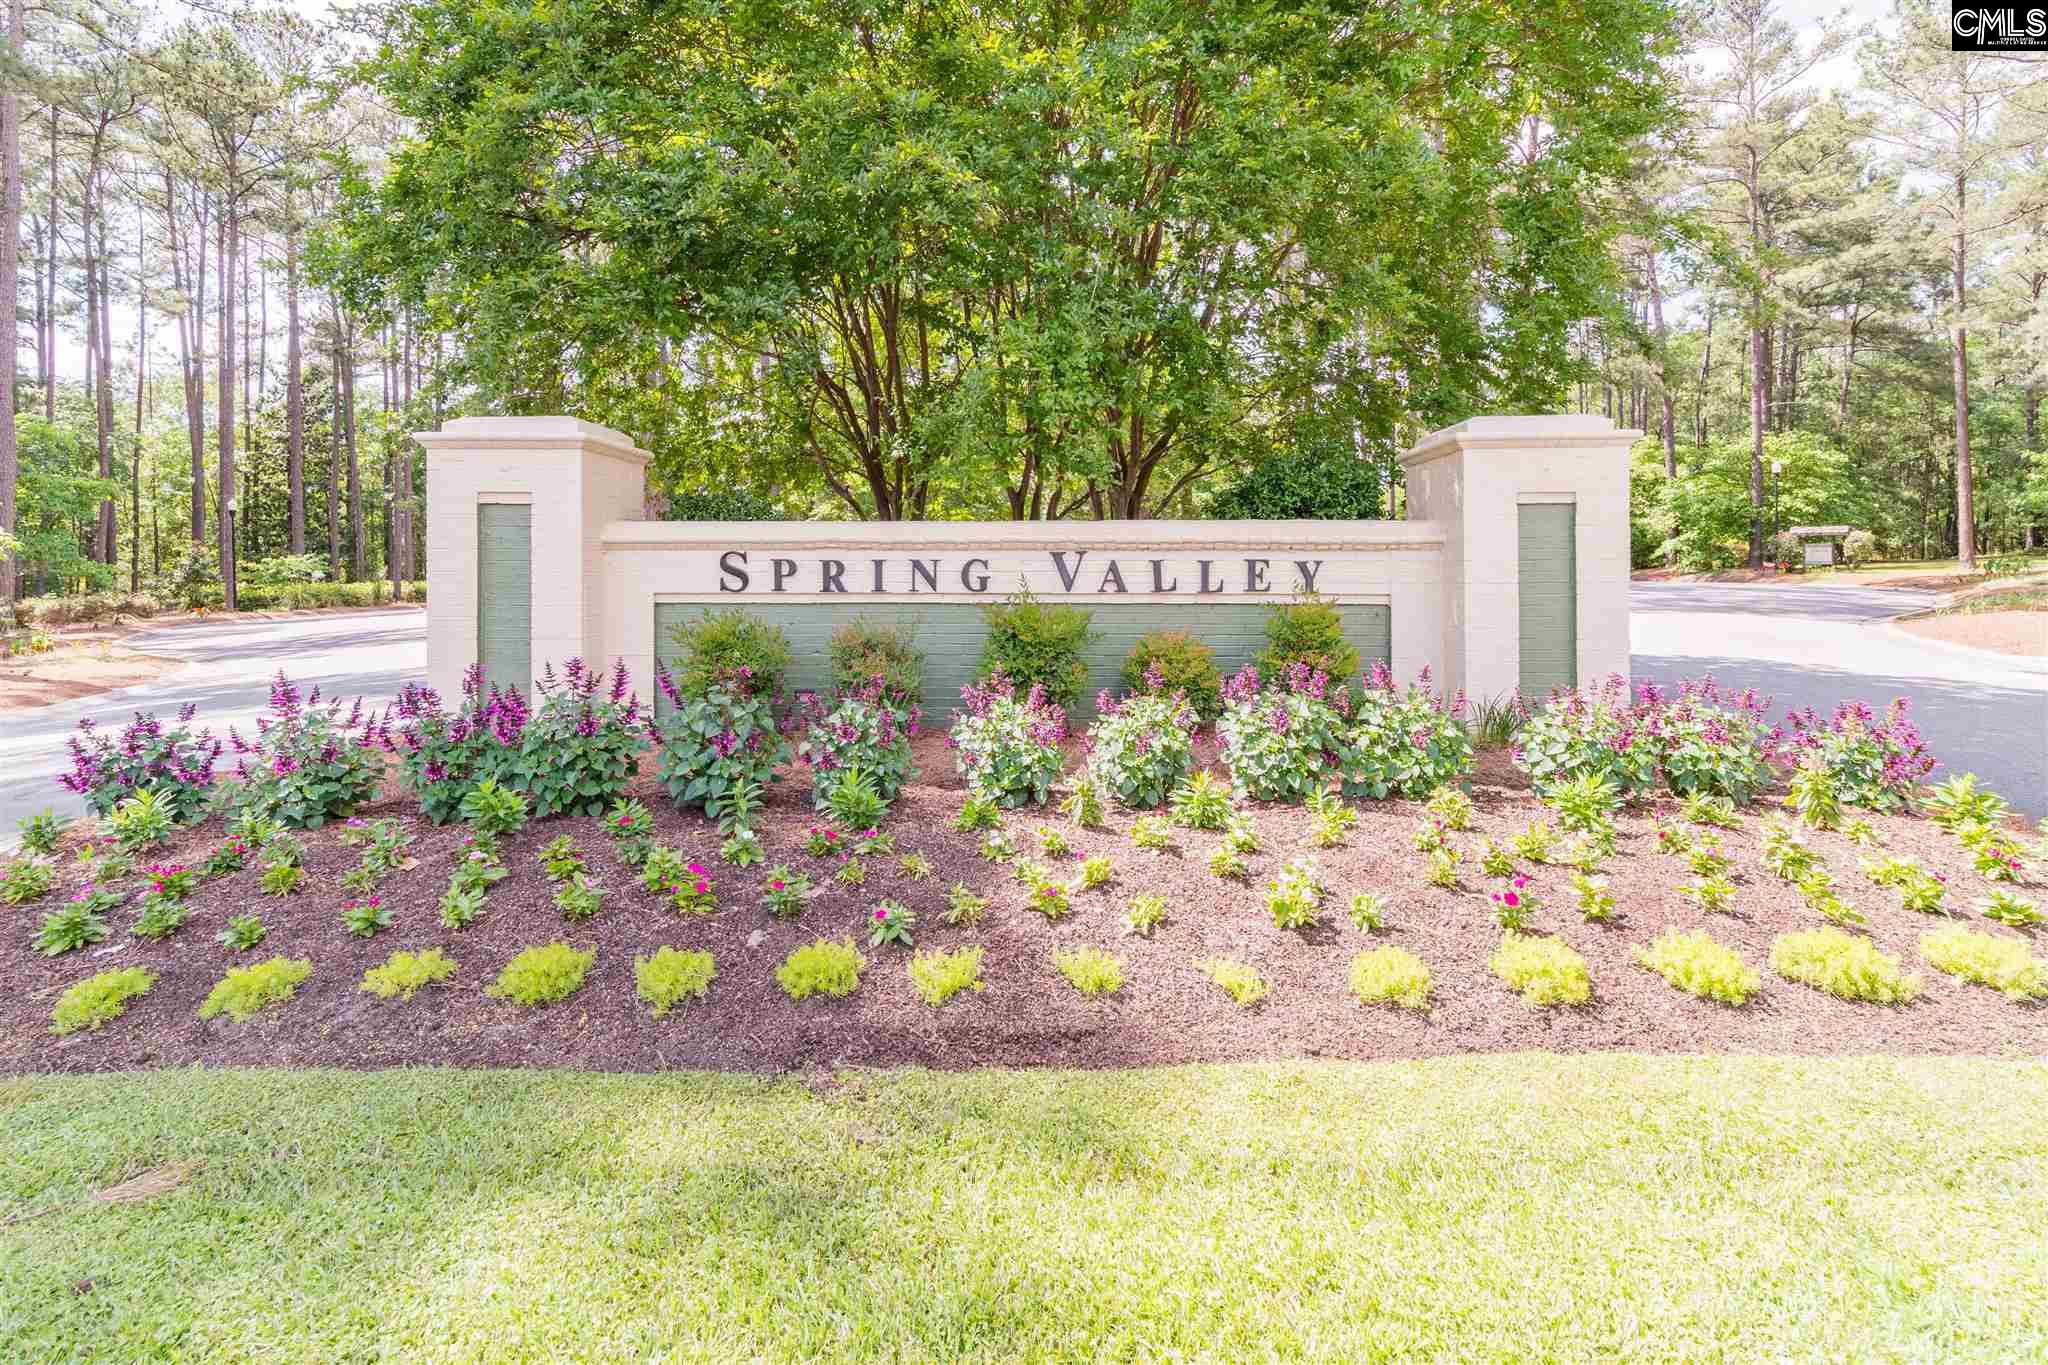 Spring Valley Community Entrance, Spring Valley Homes for Sale